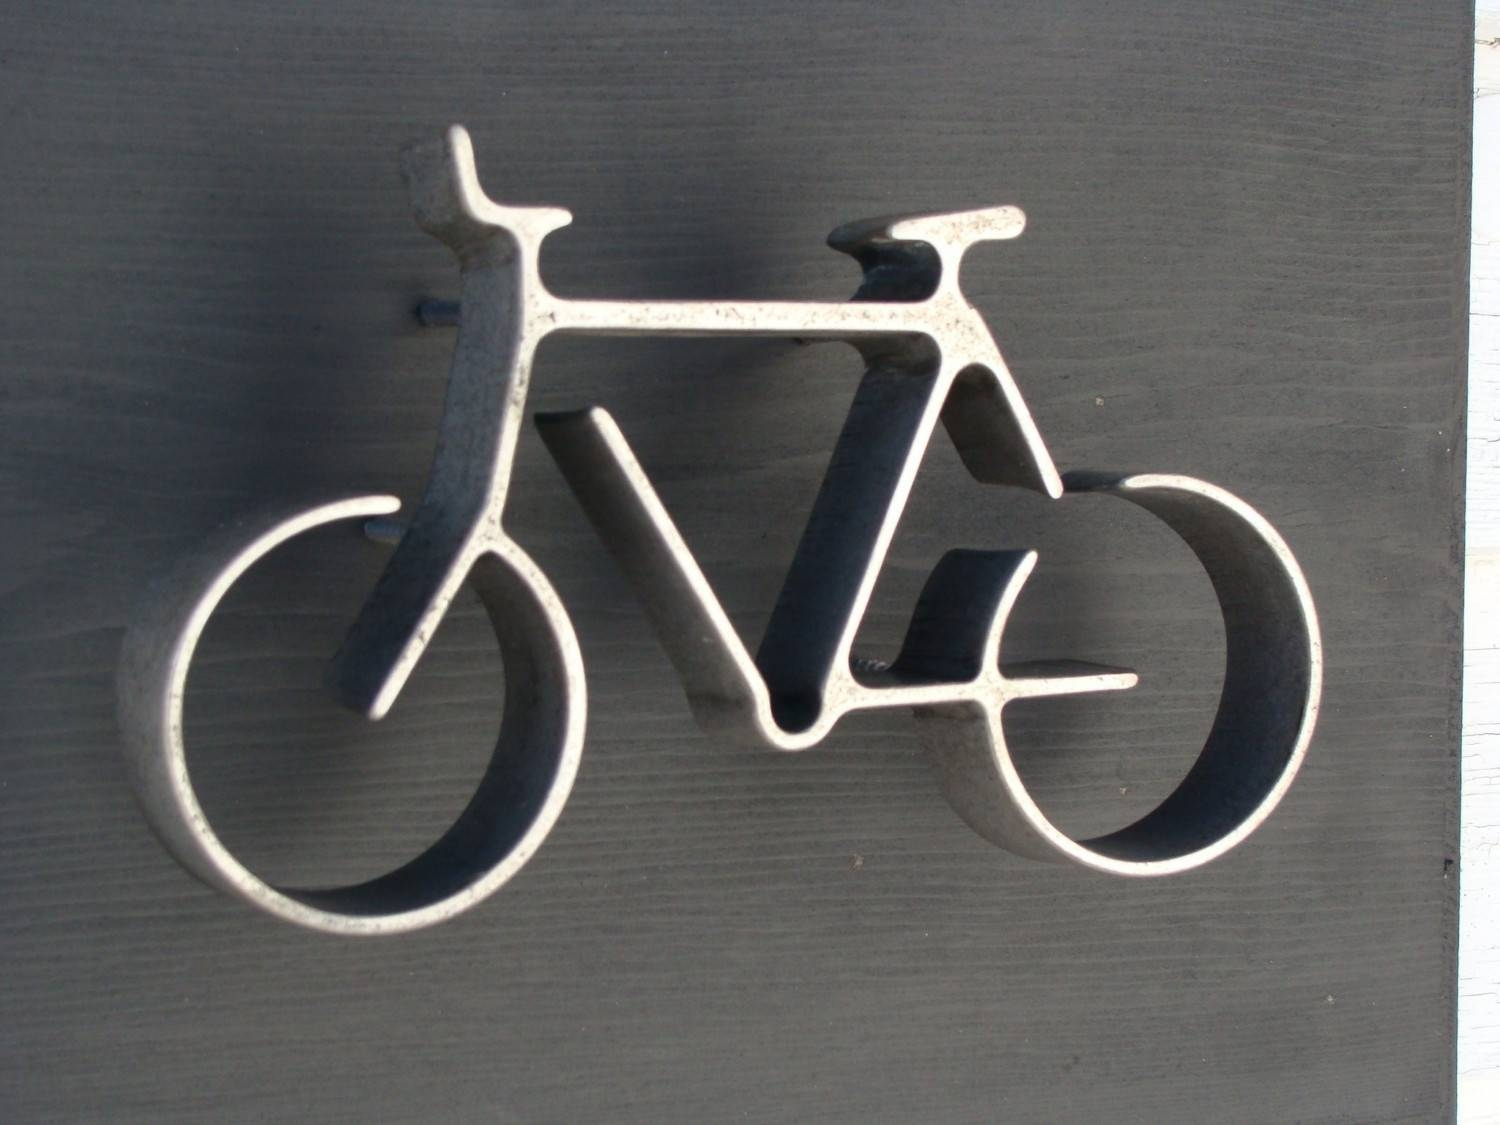 Art: Bicycle Wall Art Pertaining To Most Popular Bicycle Wall Art Decor (View 2 of 20)